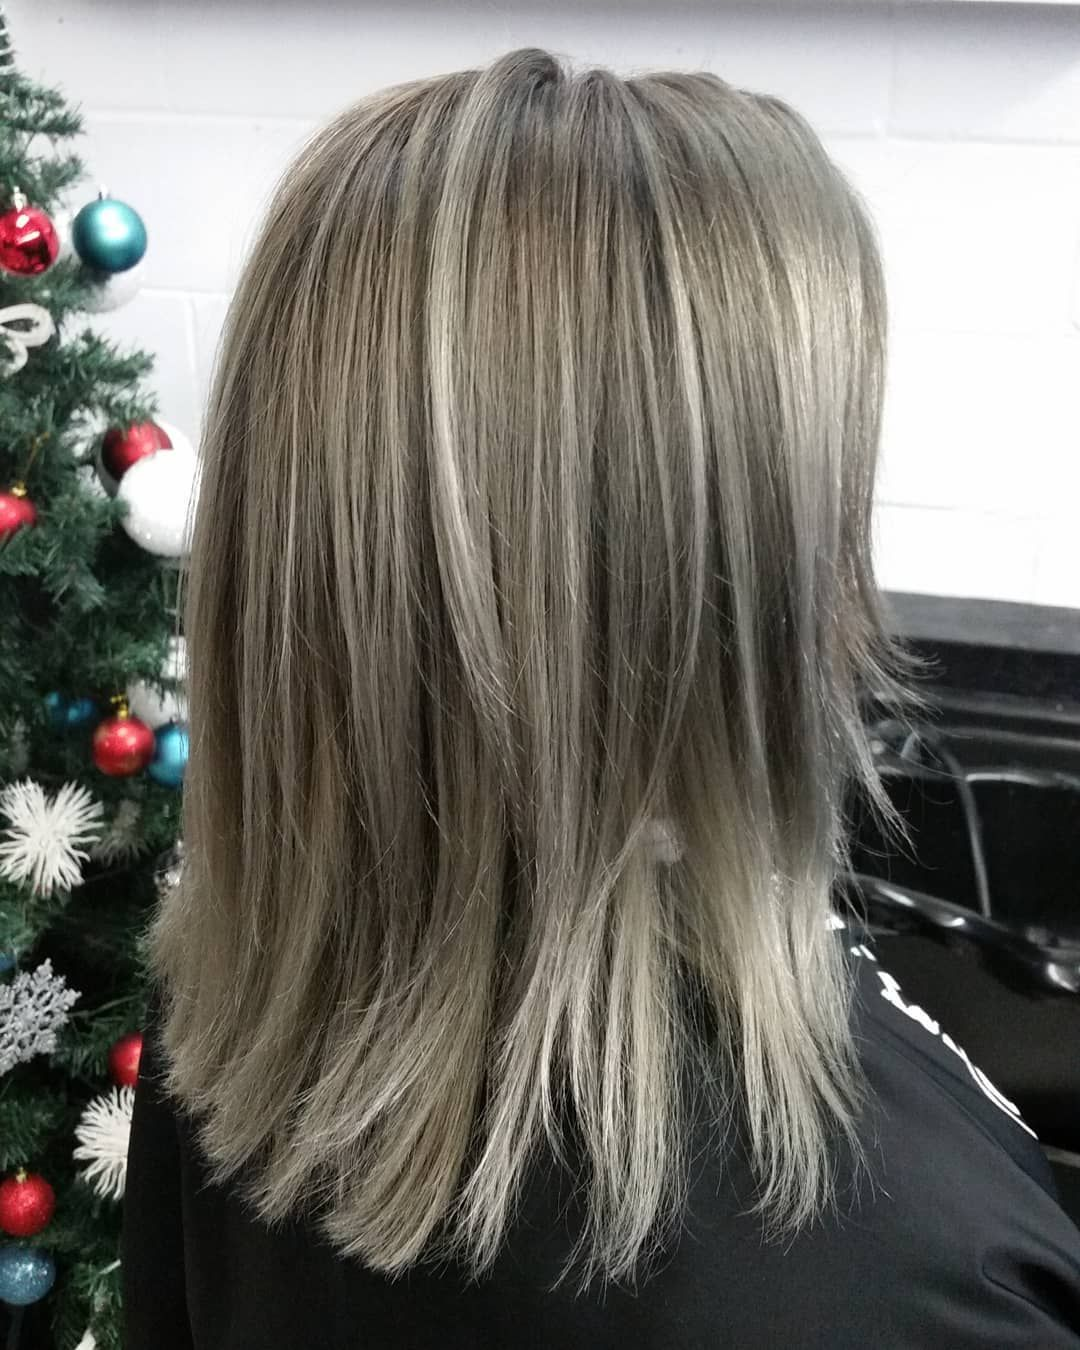 Haircut And Haircolor By Edismoz I M Dreaming Of A Silverhair Christmas She Is Ready For The Holidays Are Yo Hair Cuts Silver Hair Hair Color